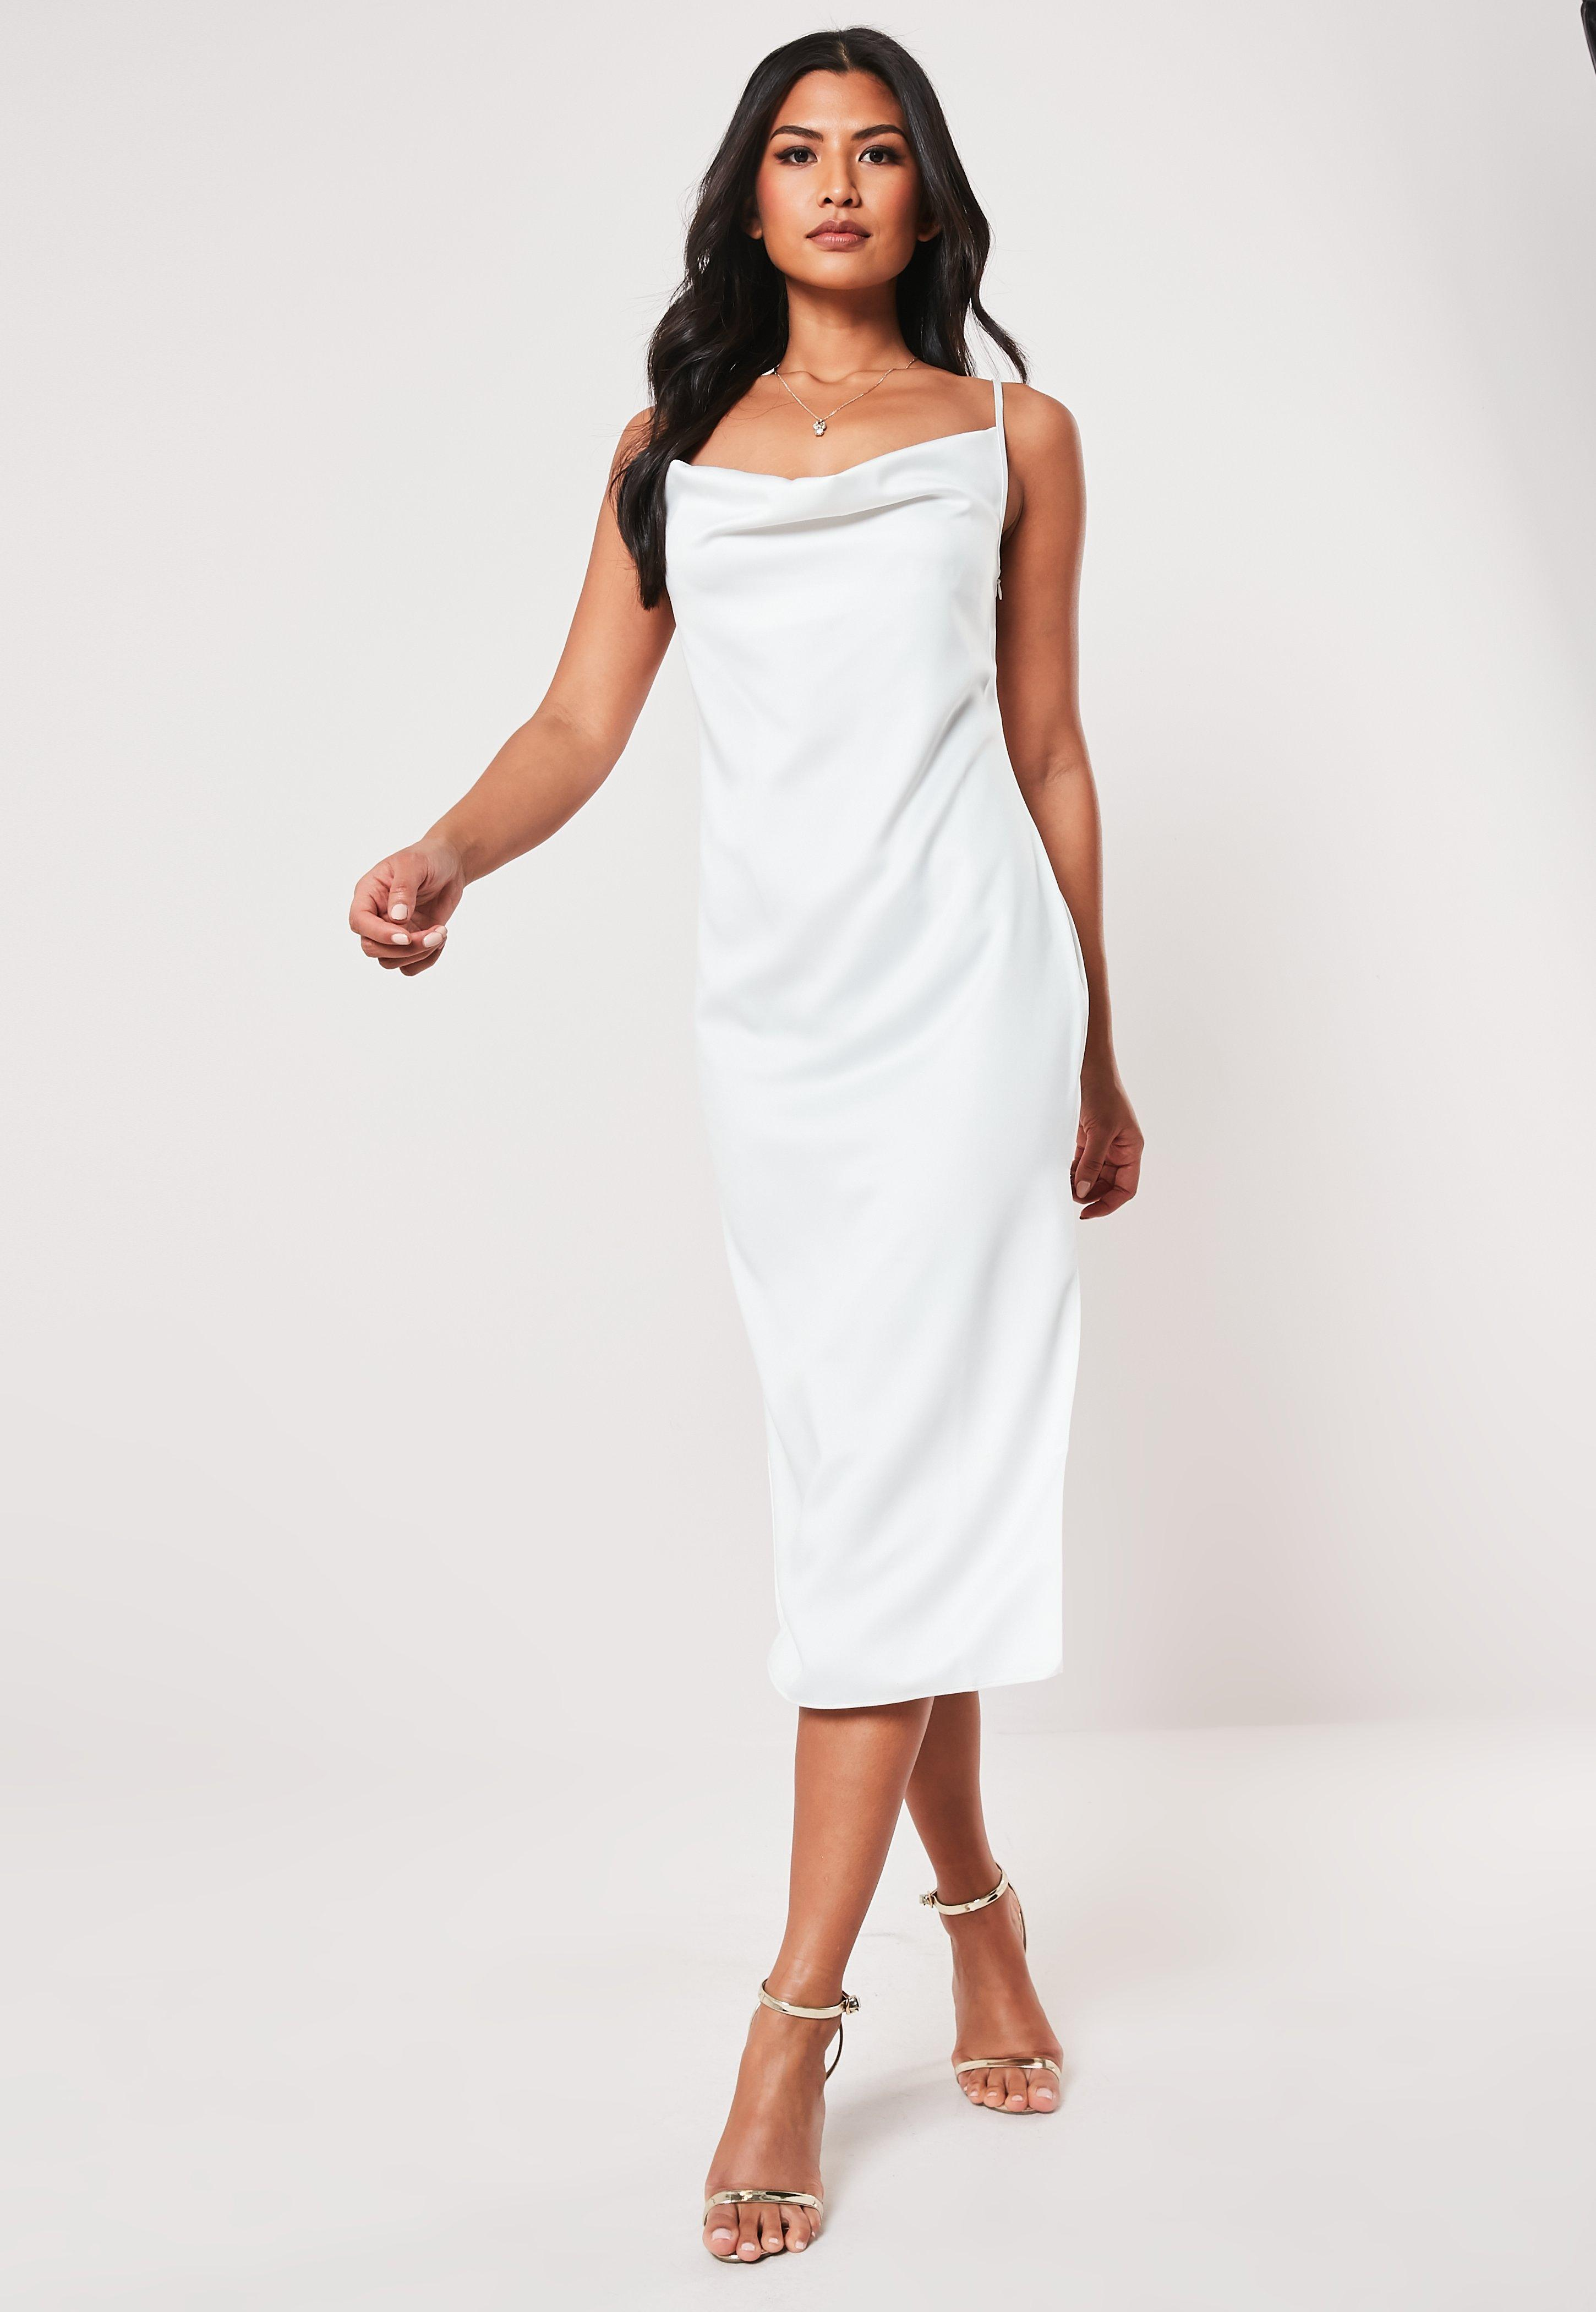 2f4045da12ef7 Slip Dresses - Women's Satin Slip Dresses Online | Missguided